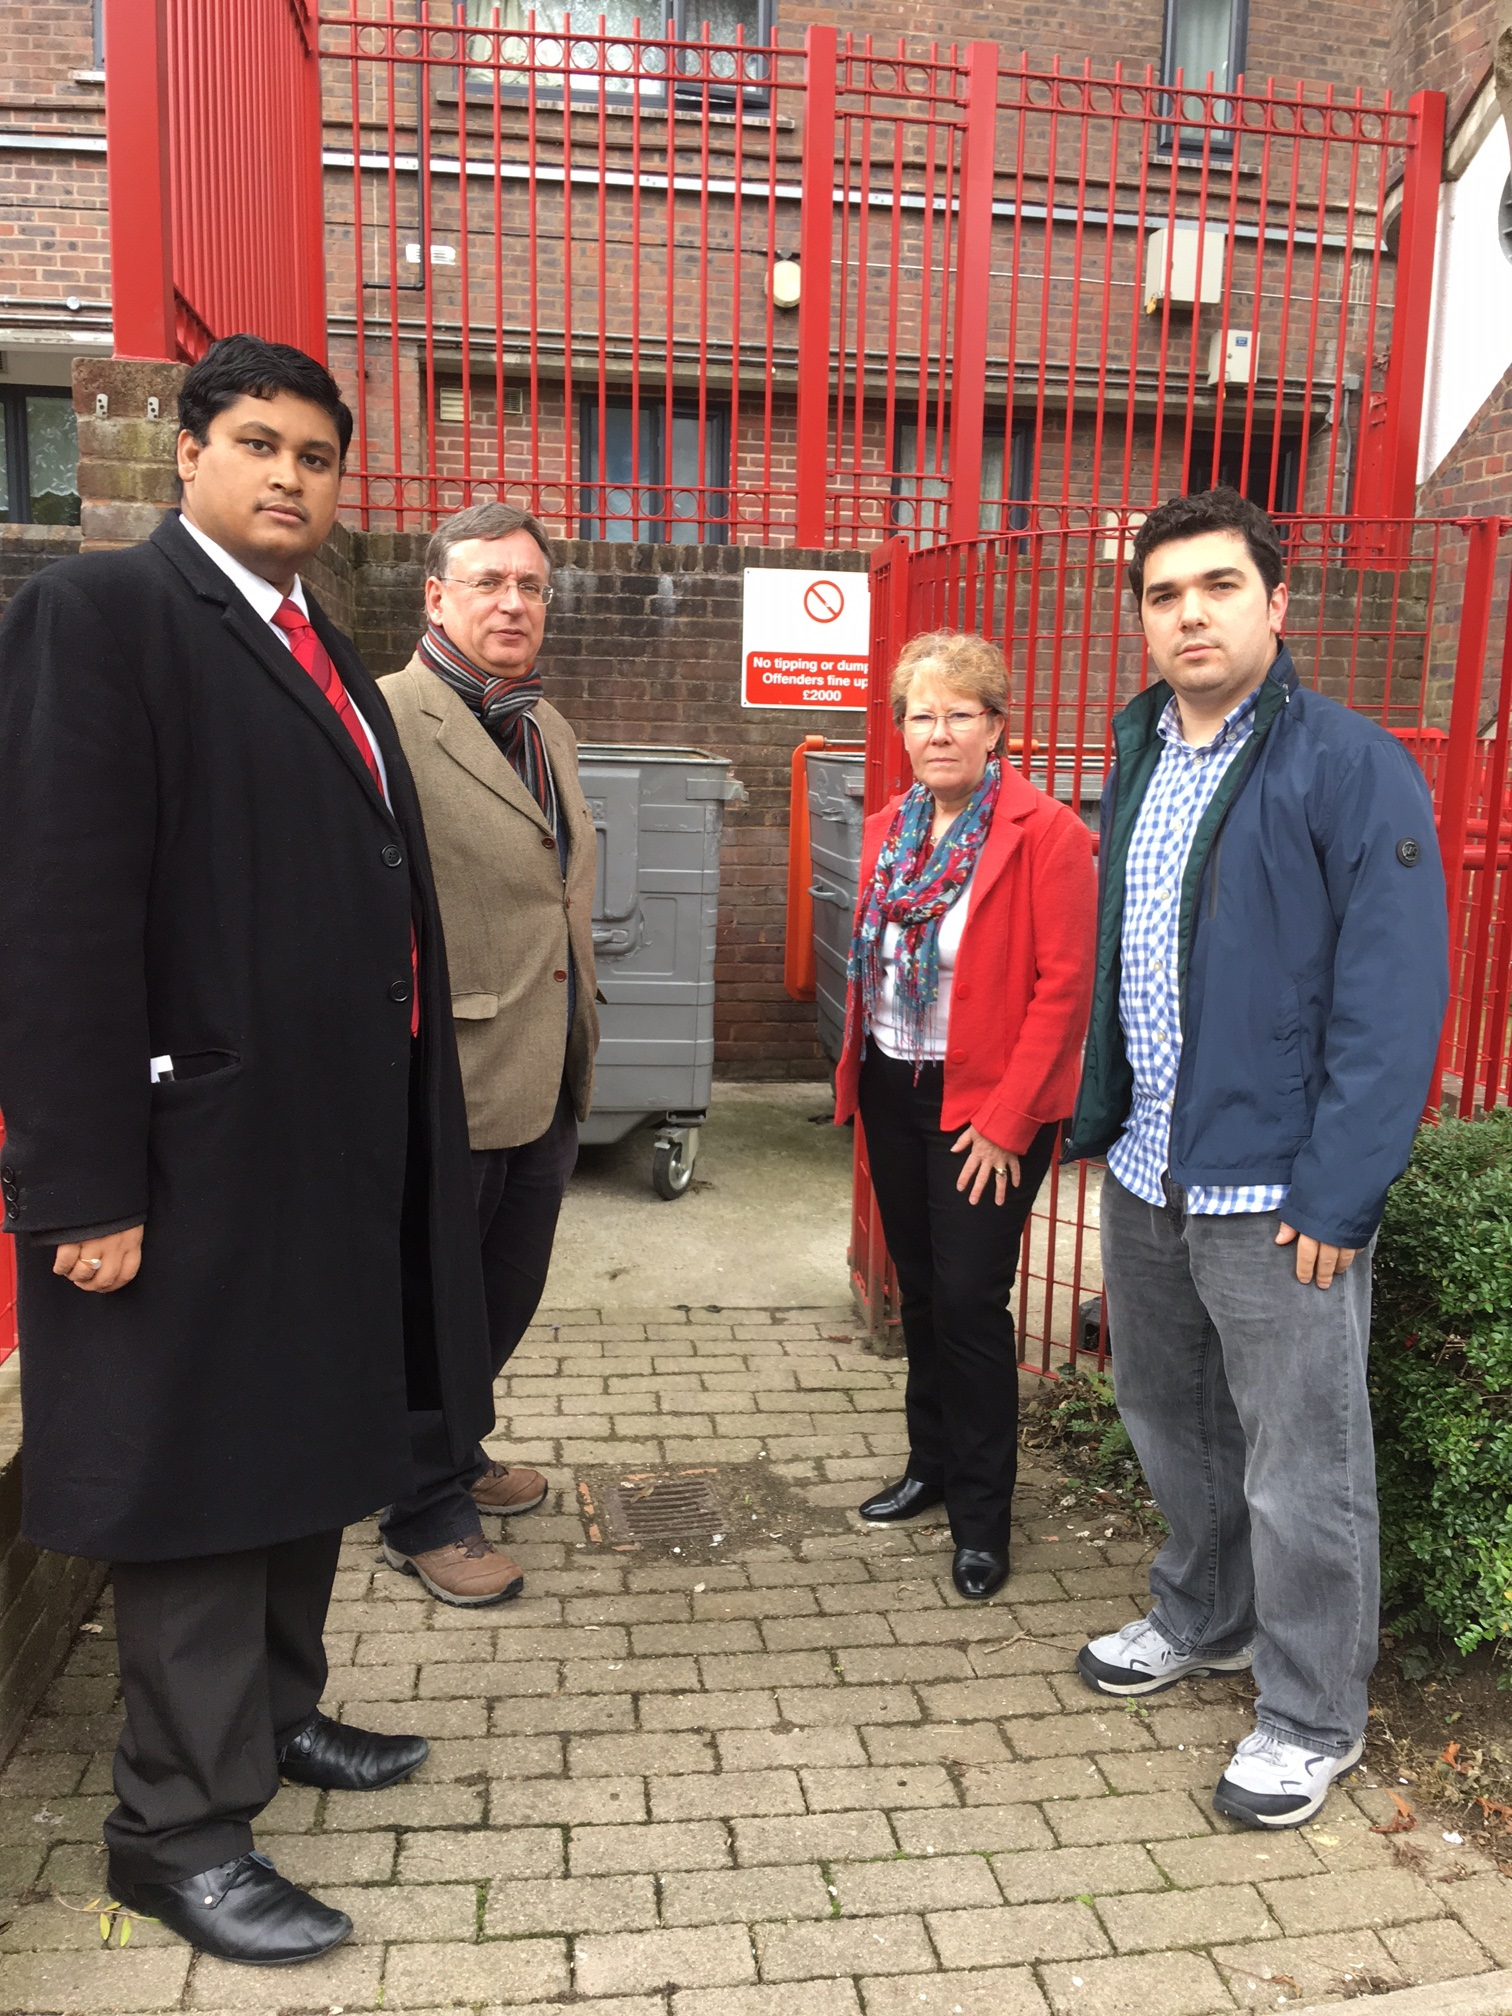 Cllr Arjun Mittra, Andrew Dismore AM, Cllr Alison Moore and Cllr Alon Or-bach